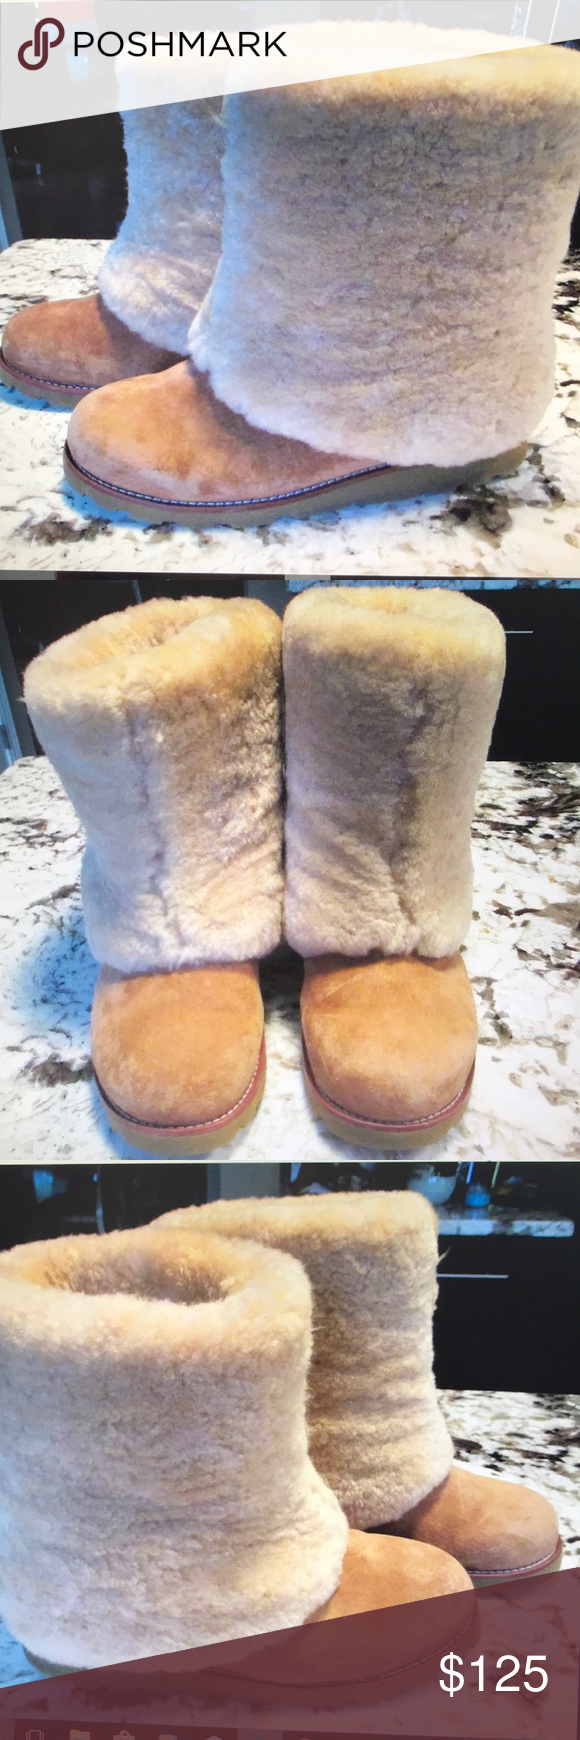 d6a61bfd5ad UGG Australia sz 7 PATTEN Bootie 3220 Chestnut EUC Authentic UGG ...